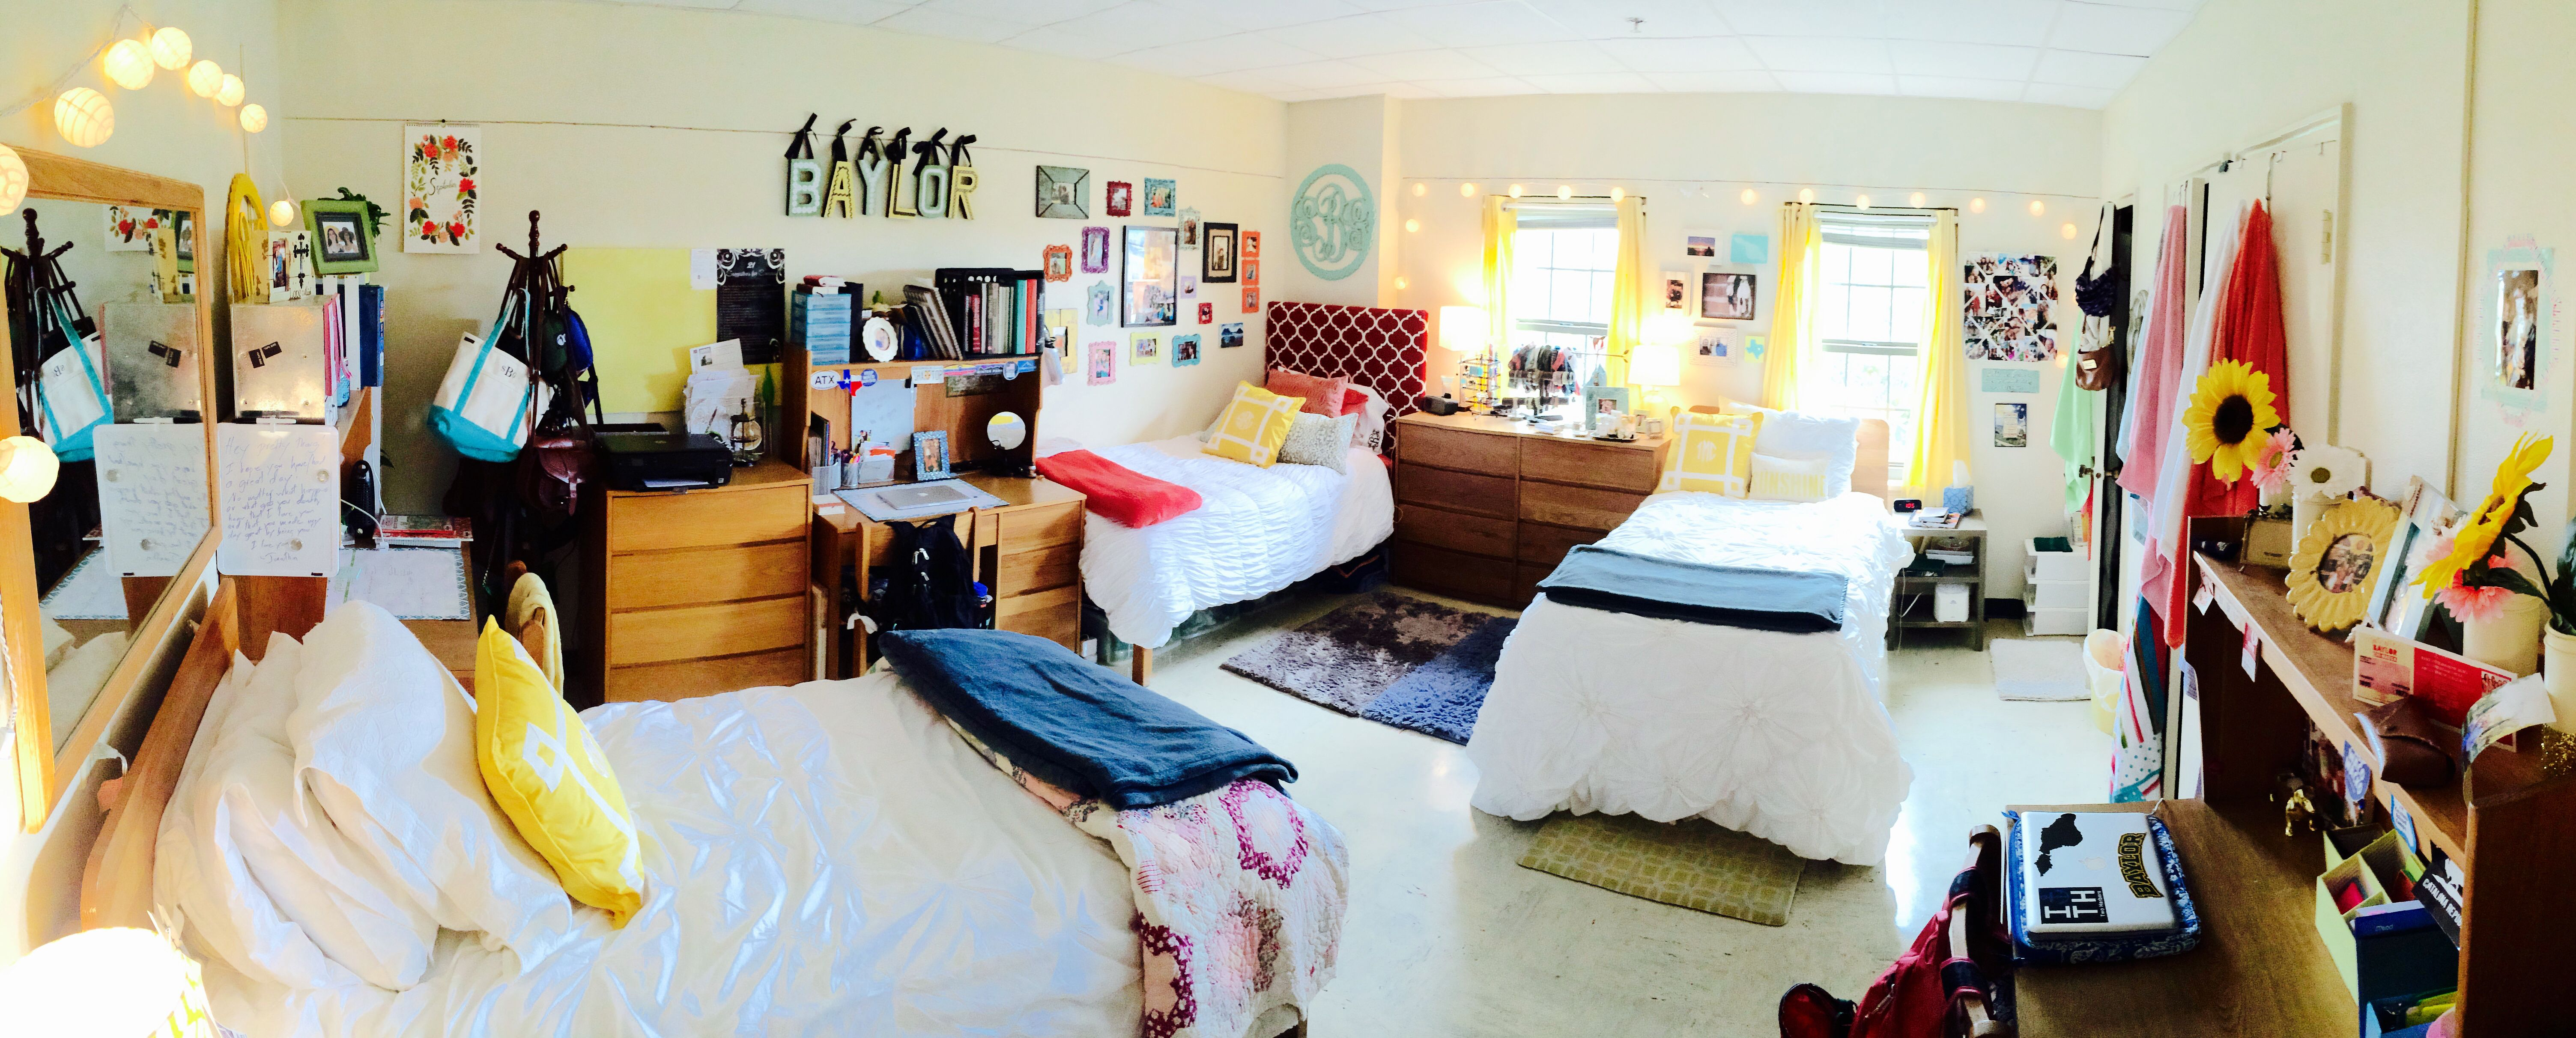 Baylor Collins Dorm Room Design